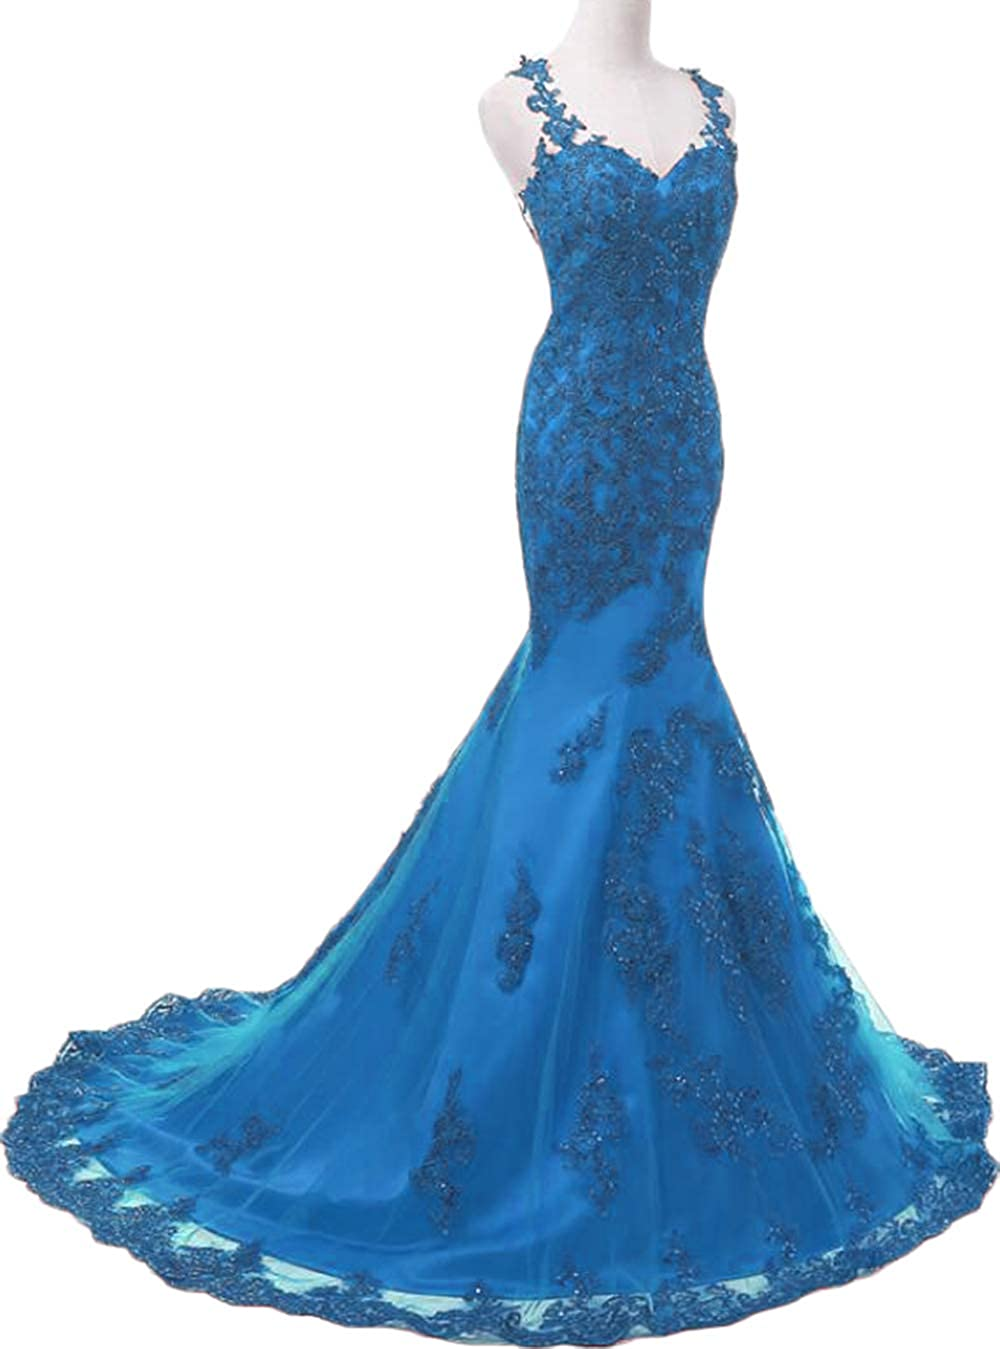 bluee Womens Illusions Lace Mermaid Prom Dresses Long 2019 Beaded Tulle Wedding Party Dresses Formal Evening Gowns